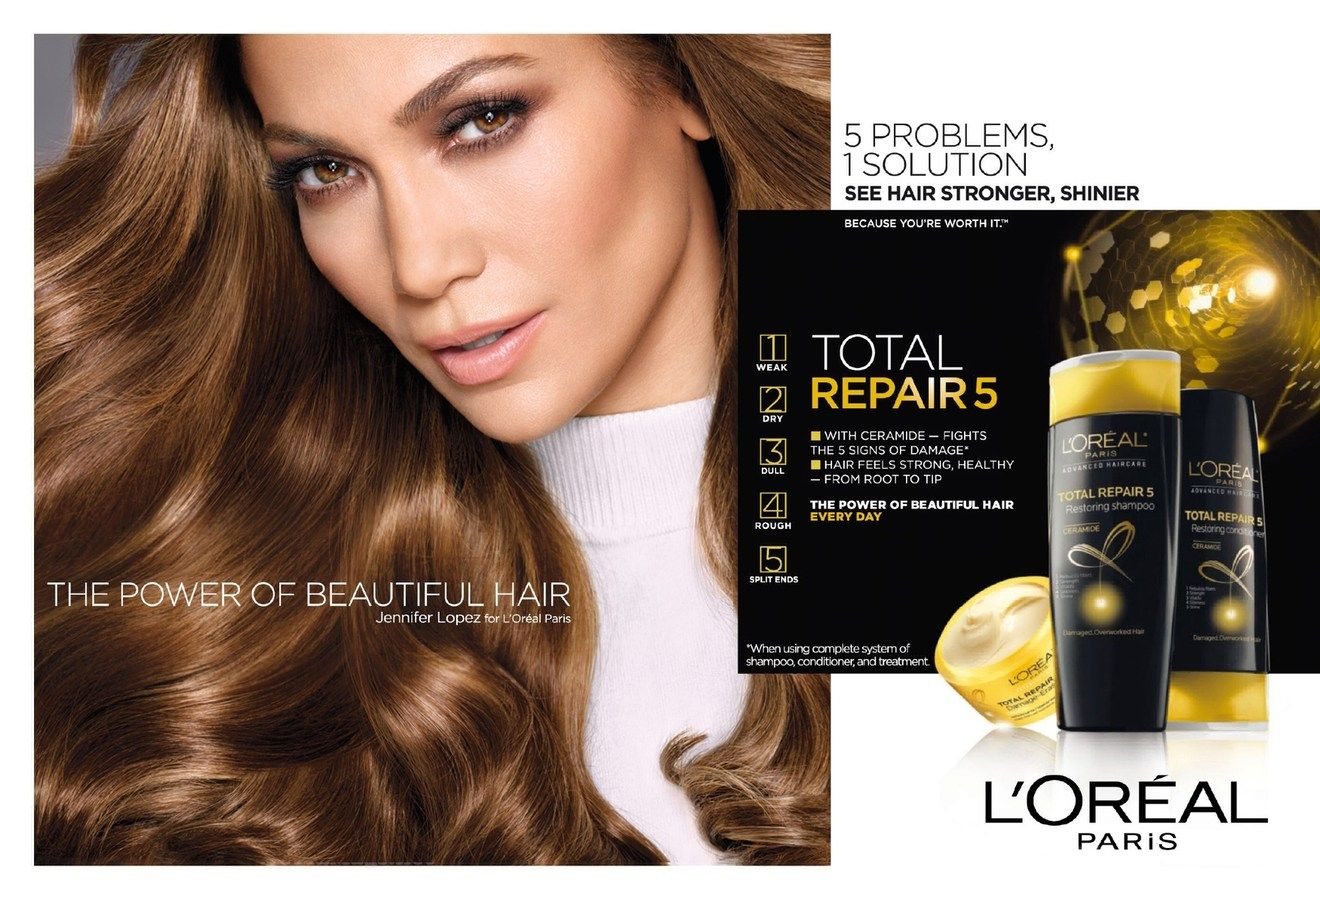 Pin by JWT NYC on Commercial  Loreal paris, Loreal hair, Haircut